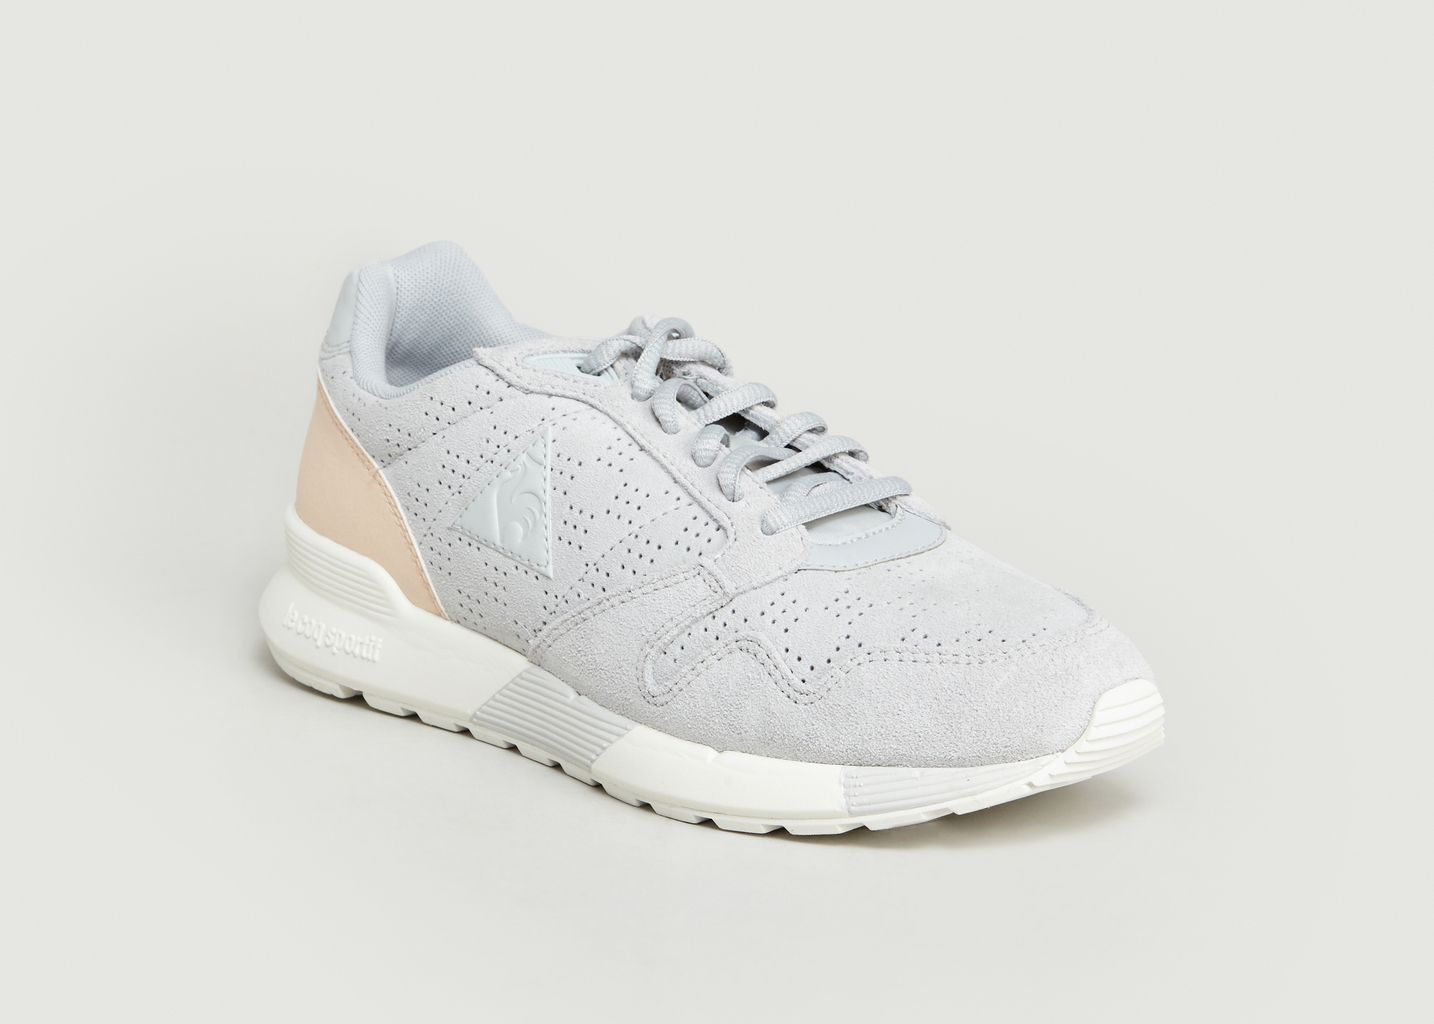 Light Le Summer Sneakers W x Omega Flavor Coq SportifL'Exception Grey CthxQrsd